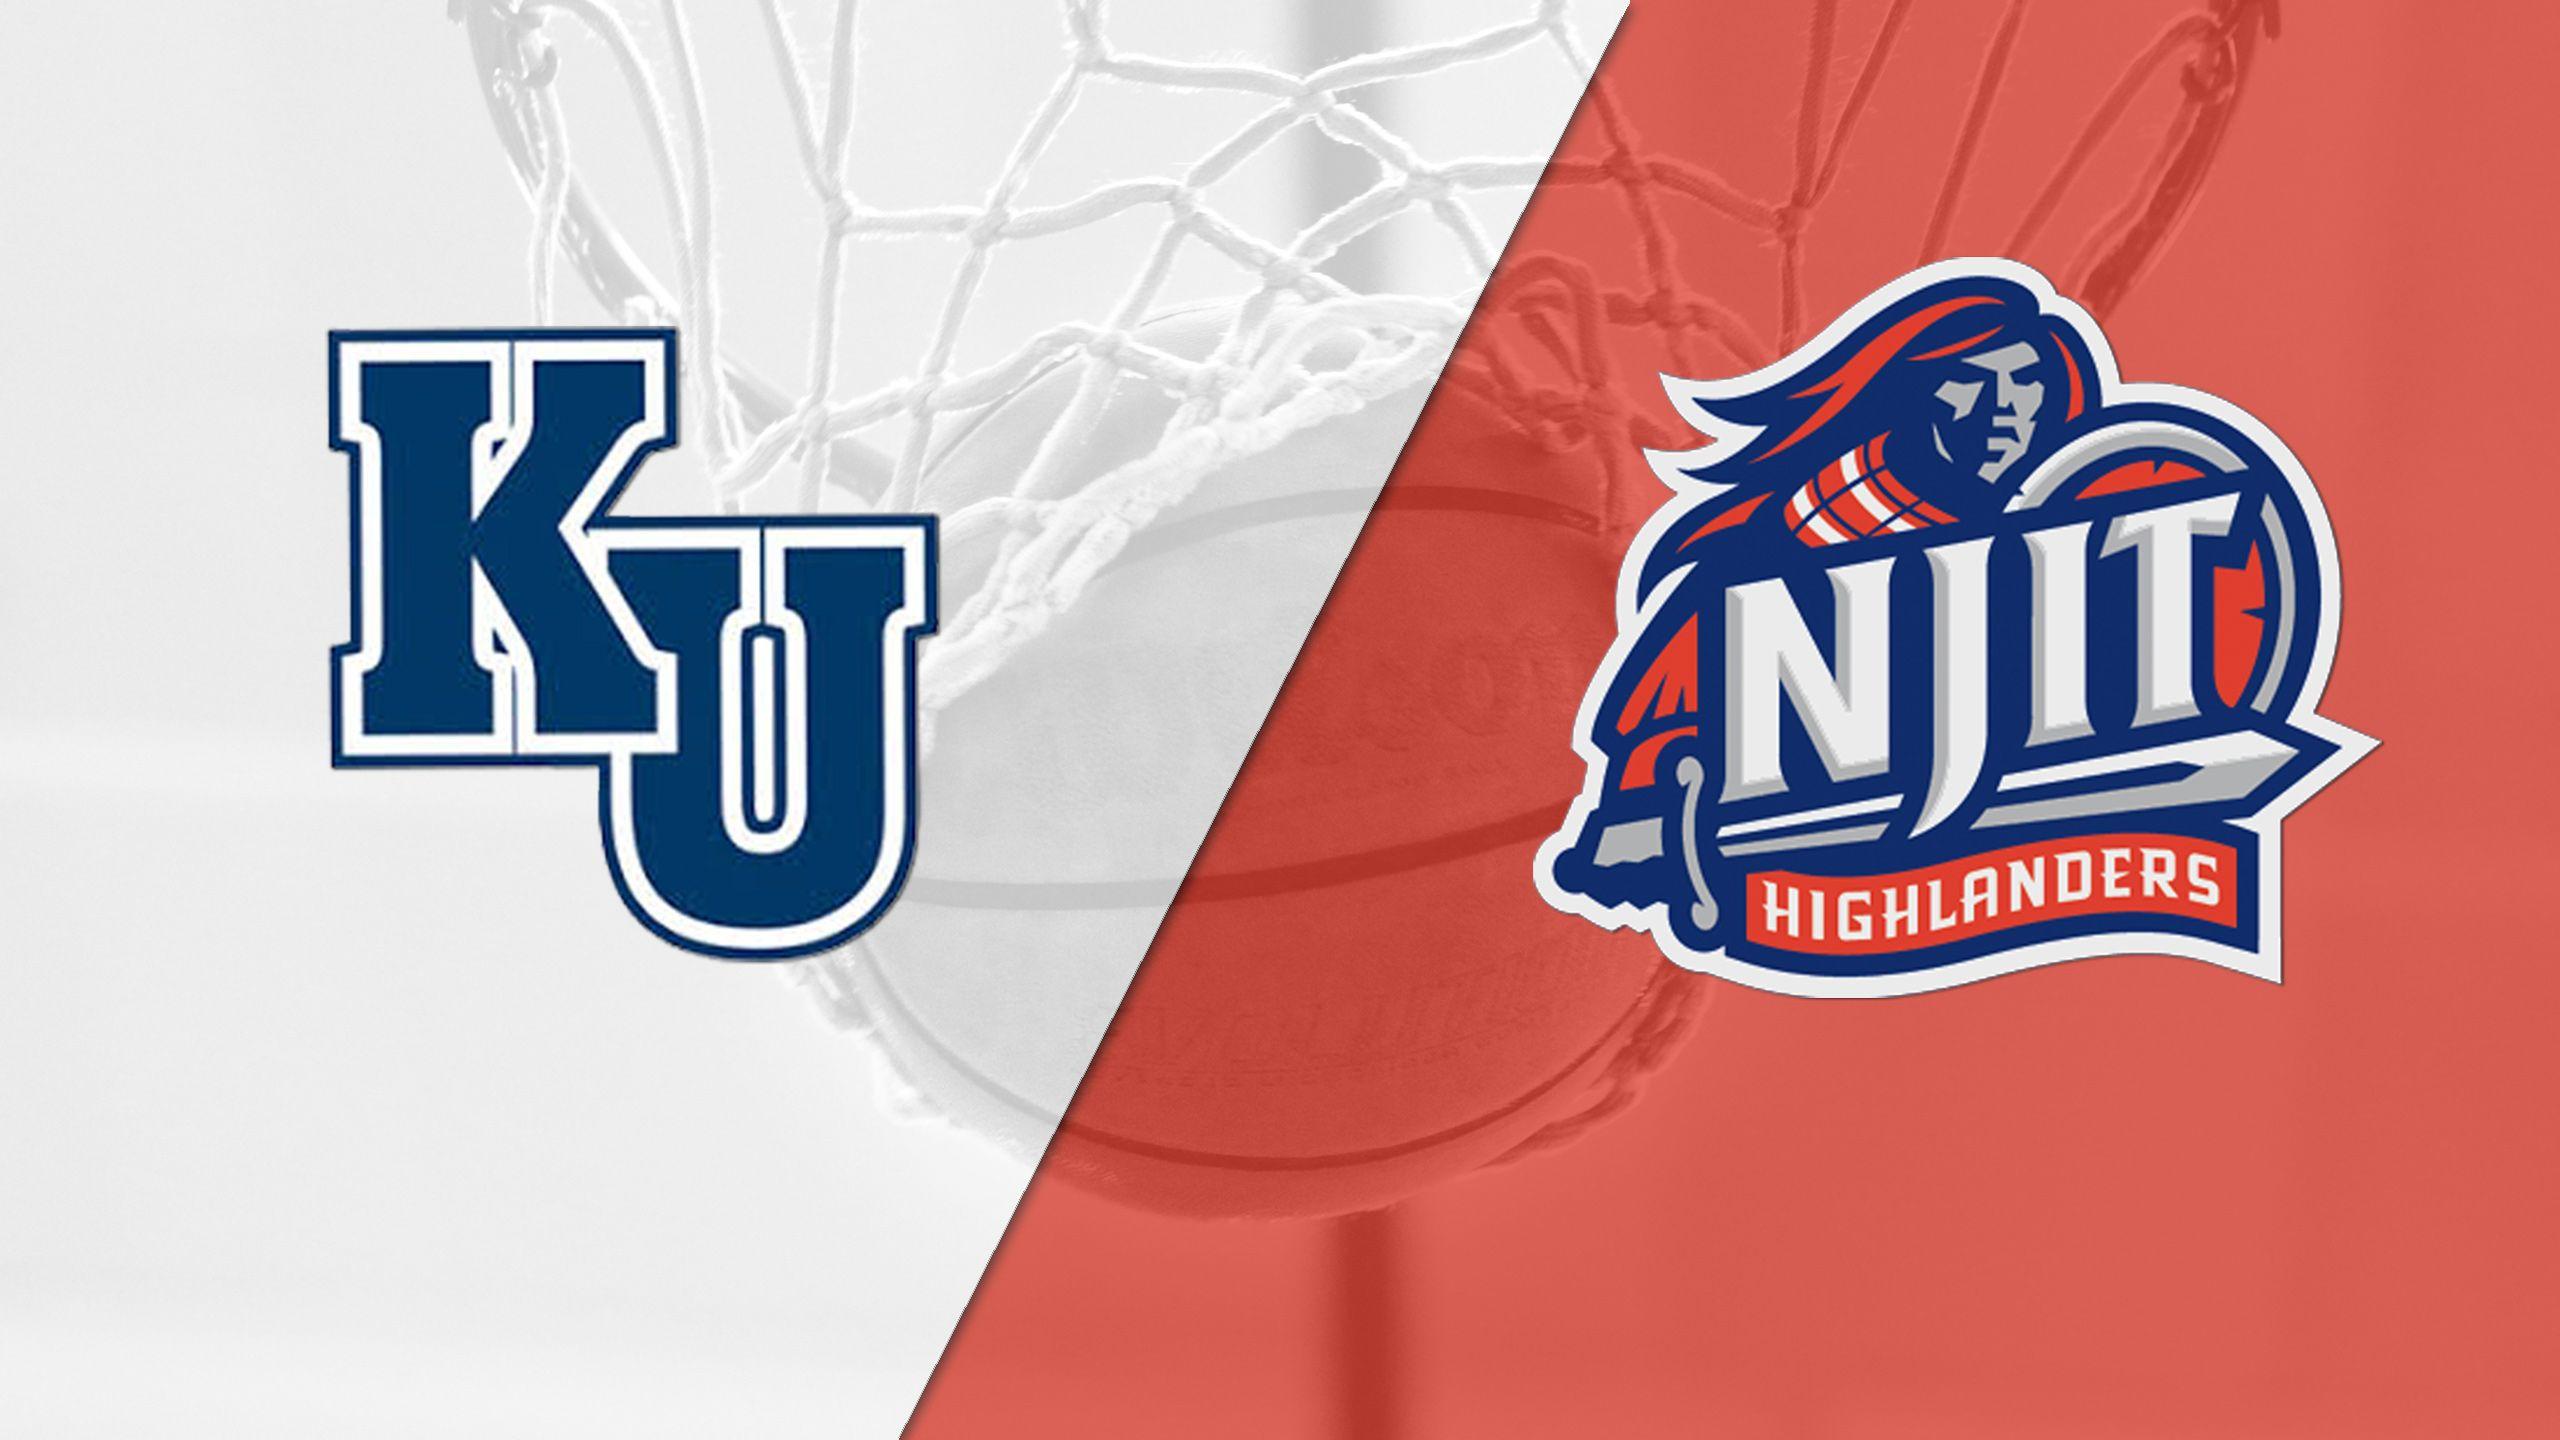 Kean vs. NJIT (M Basketball)